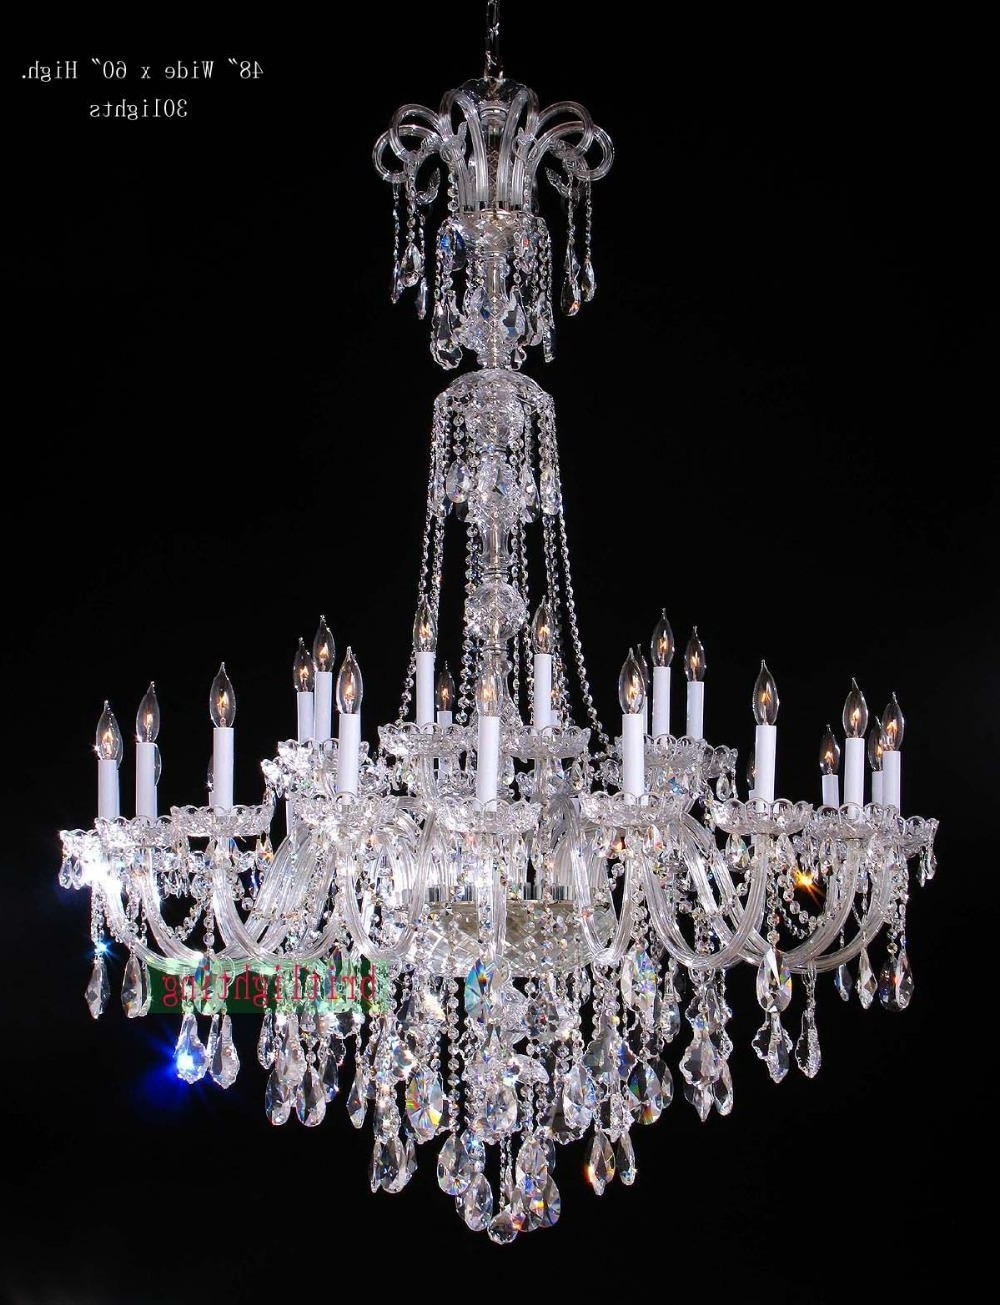 Lamp Modern Crystal Chandeliers 5 Star Hotel Chandelier Led Crystal Throughout Recent Crystal Chandeliers (View 5 of 20)